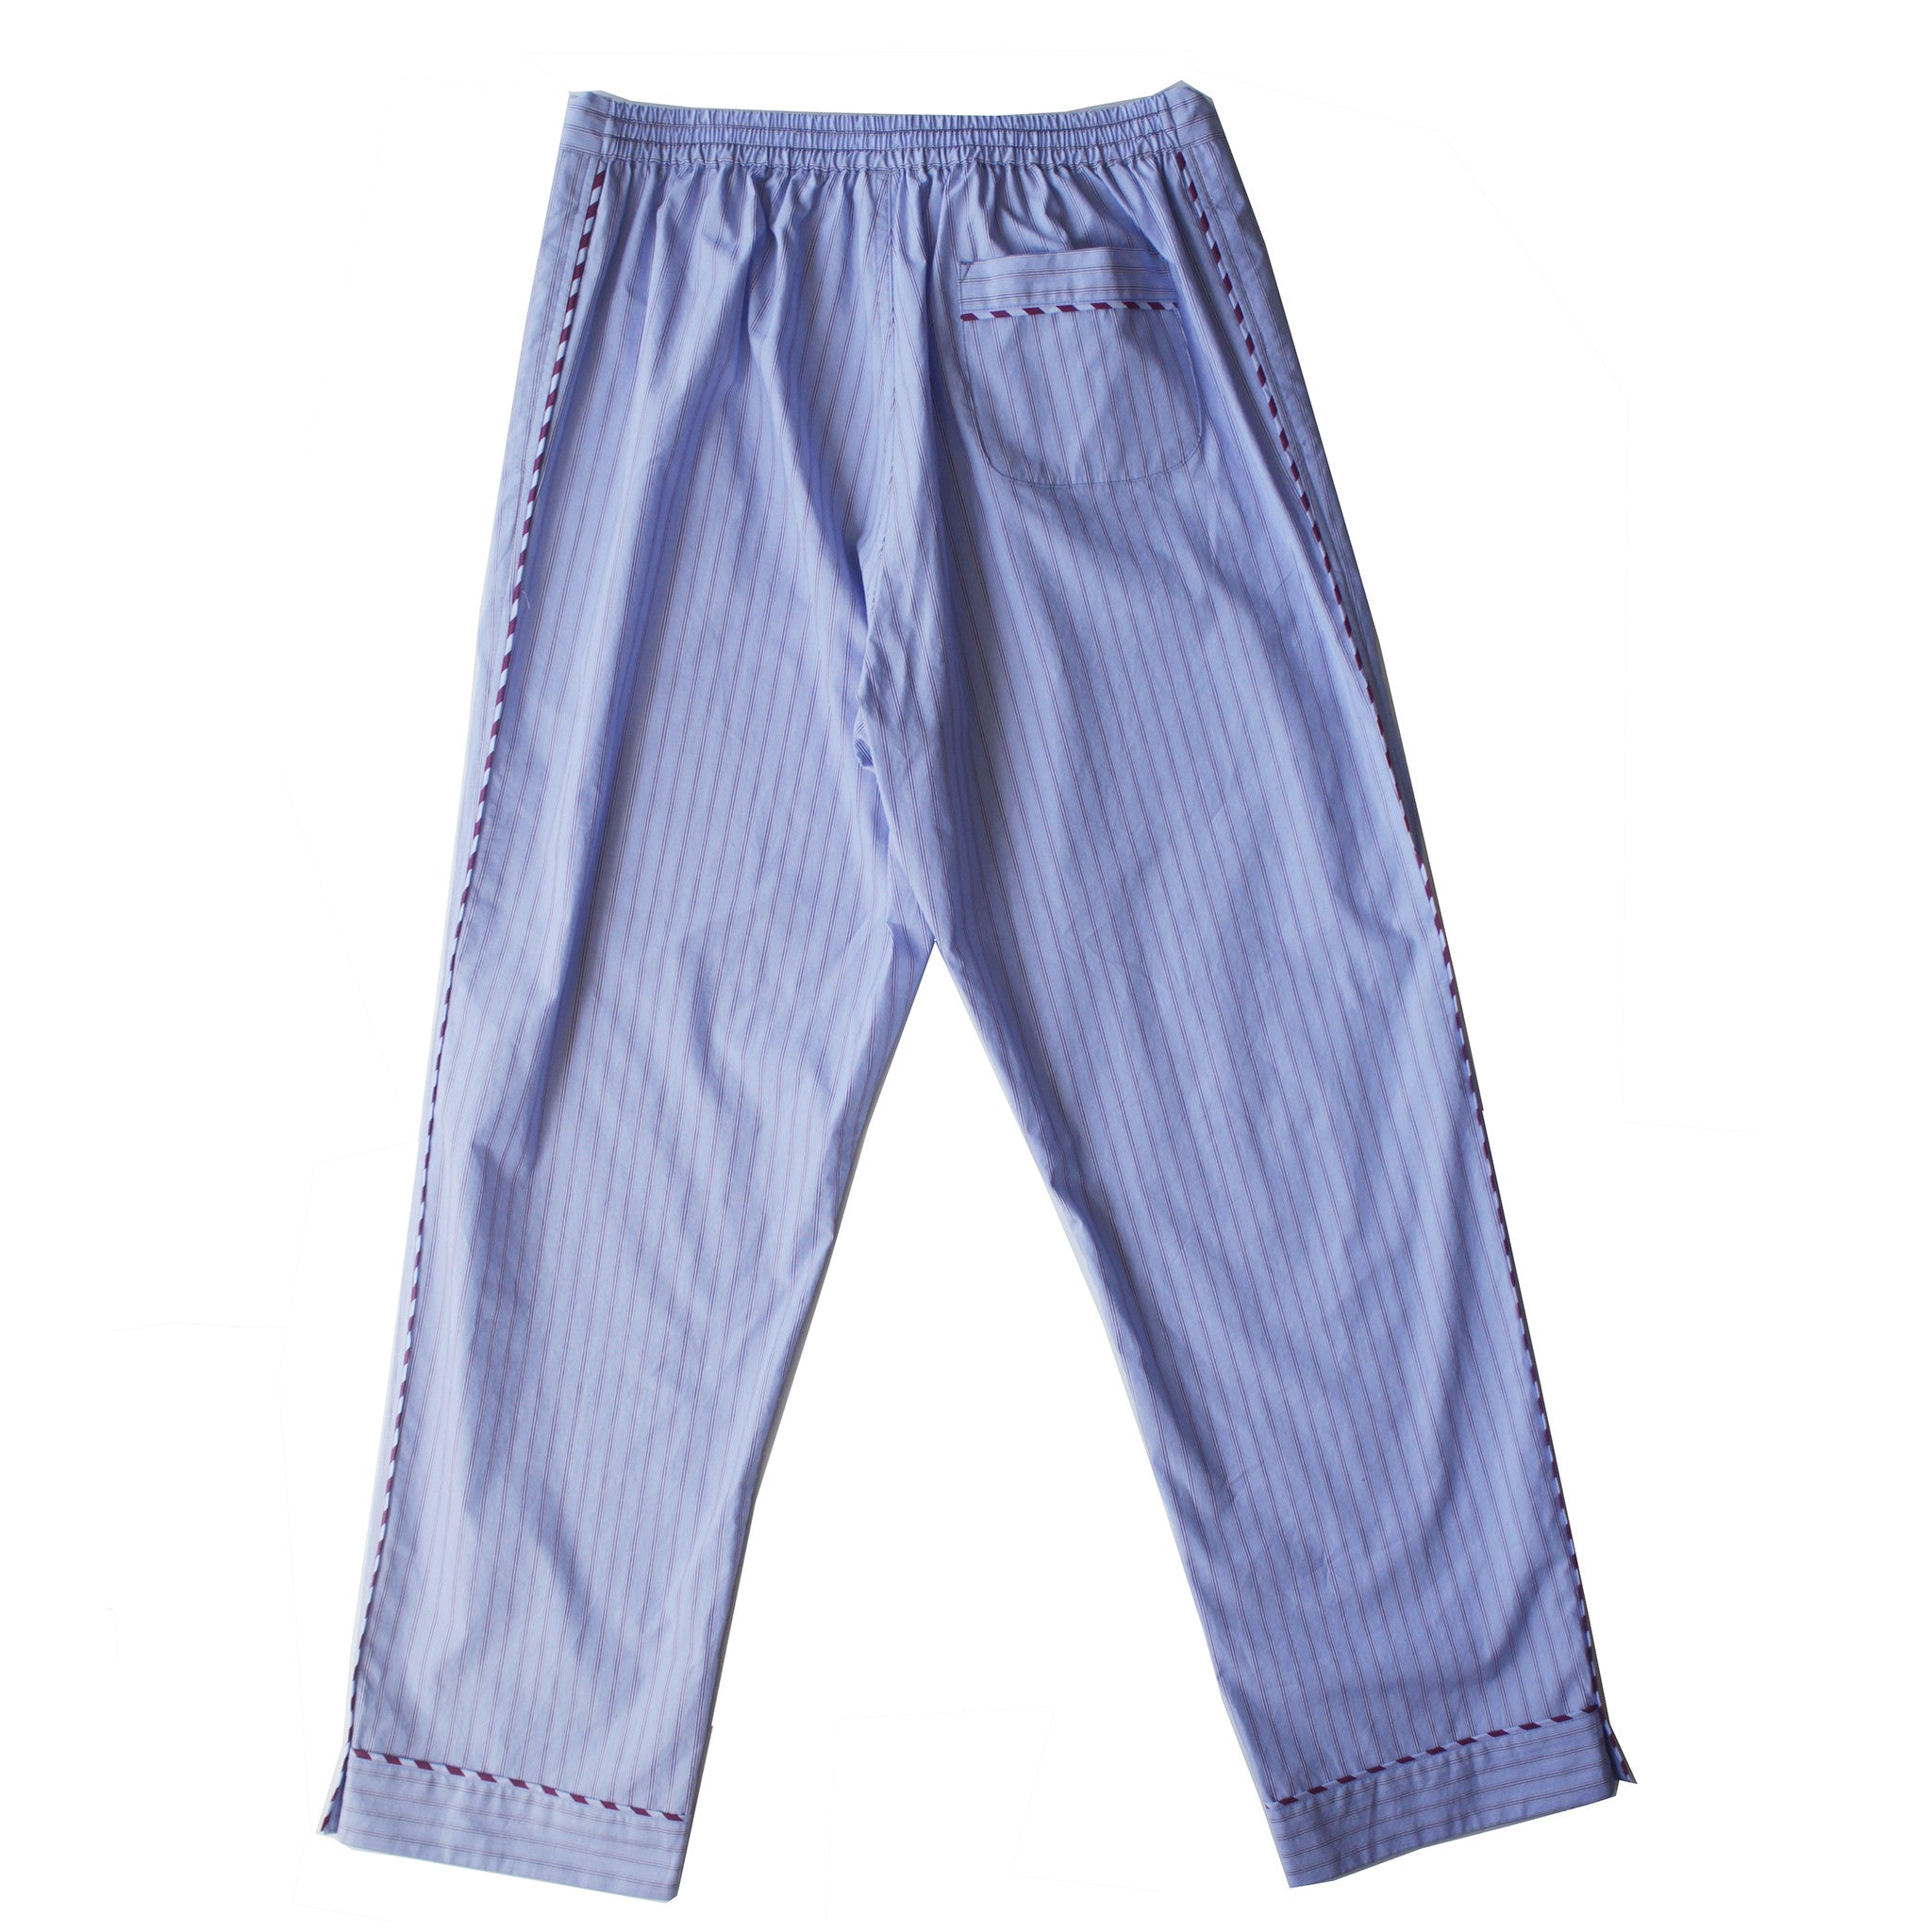 Saturn Pajama Pant in Light Blue Stripe Italian Cotton